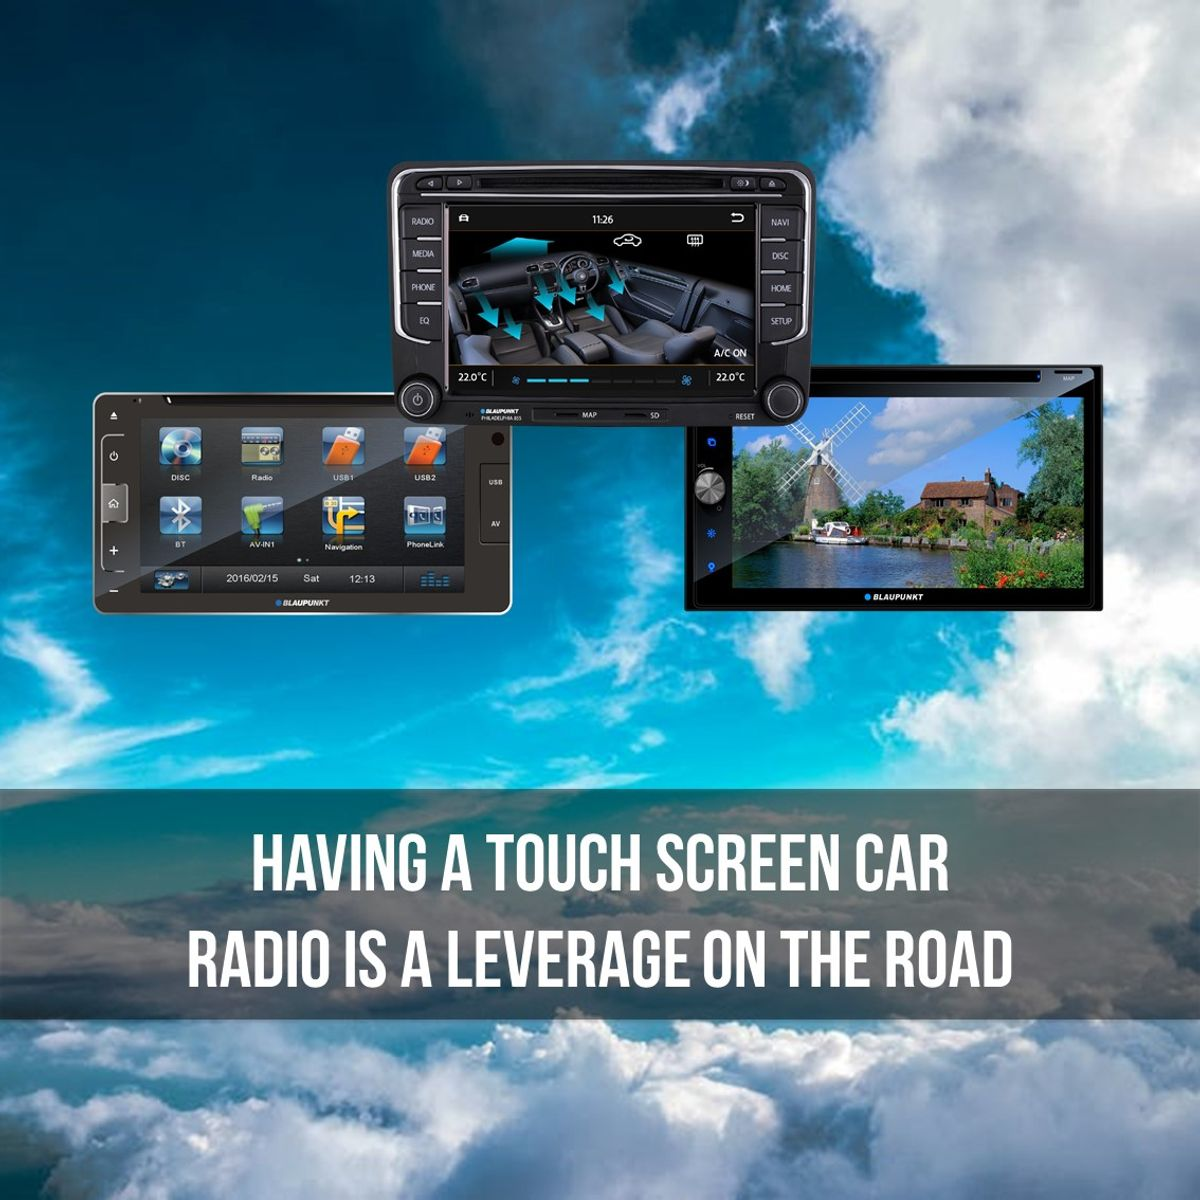 Having a touch screen car radio is a leverage on the road